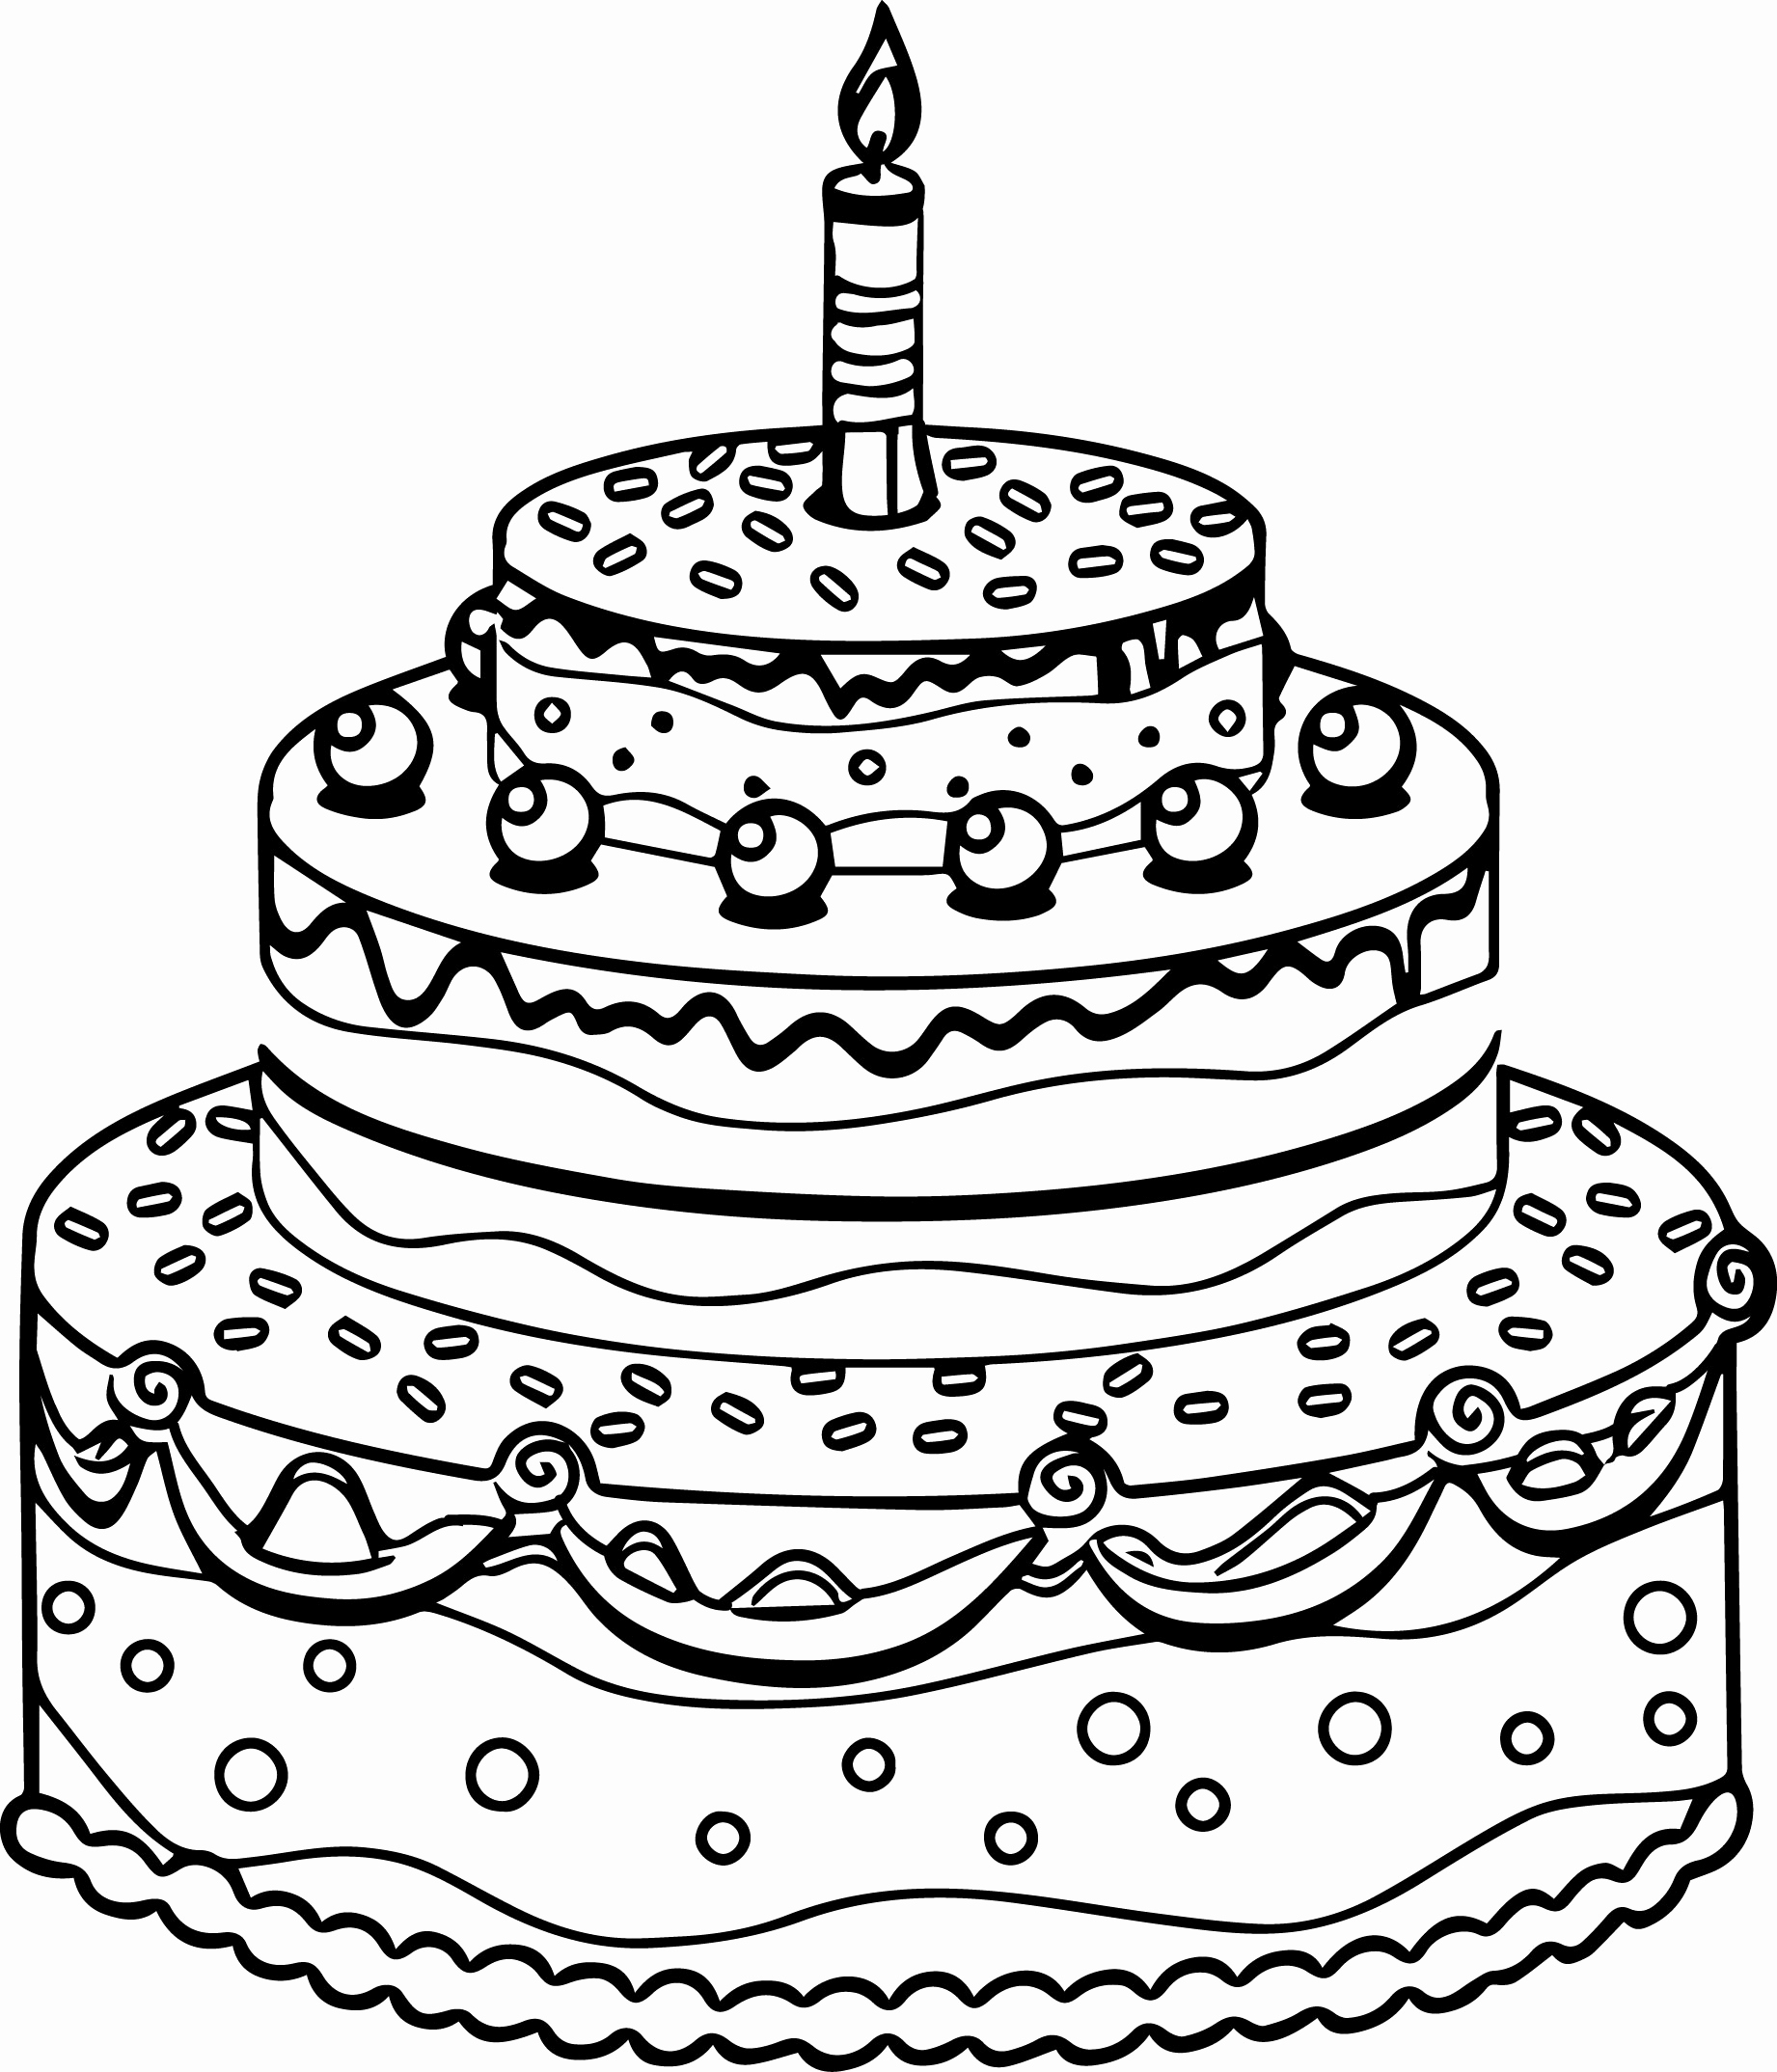 coloring cake pictures printable coloring pages november 2012 cake pictures coloring